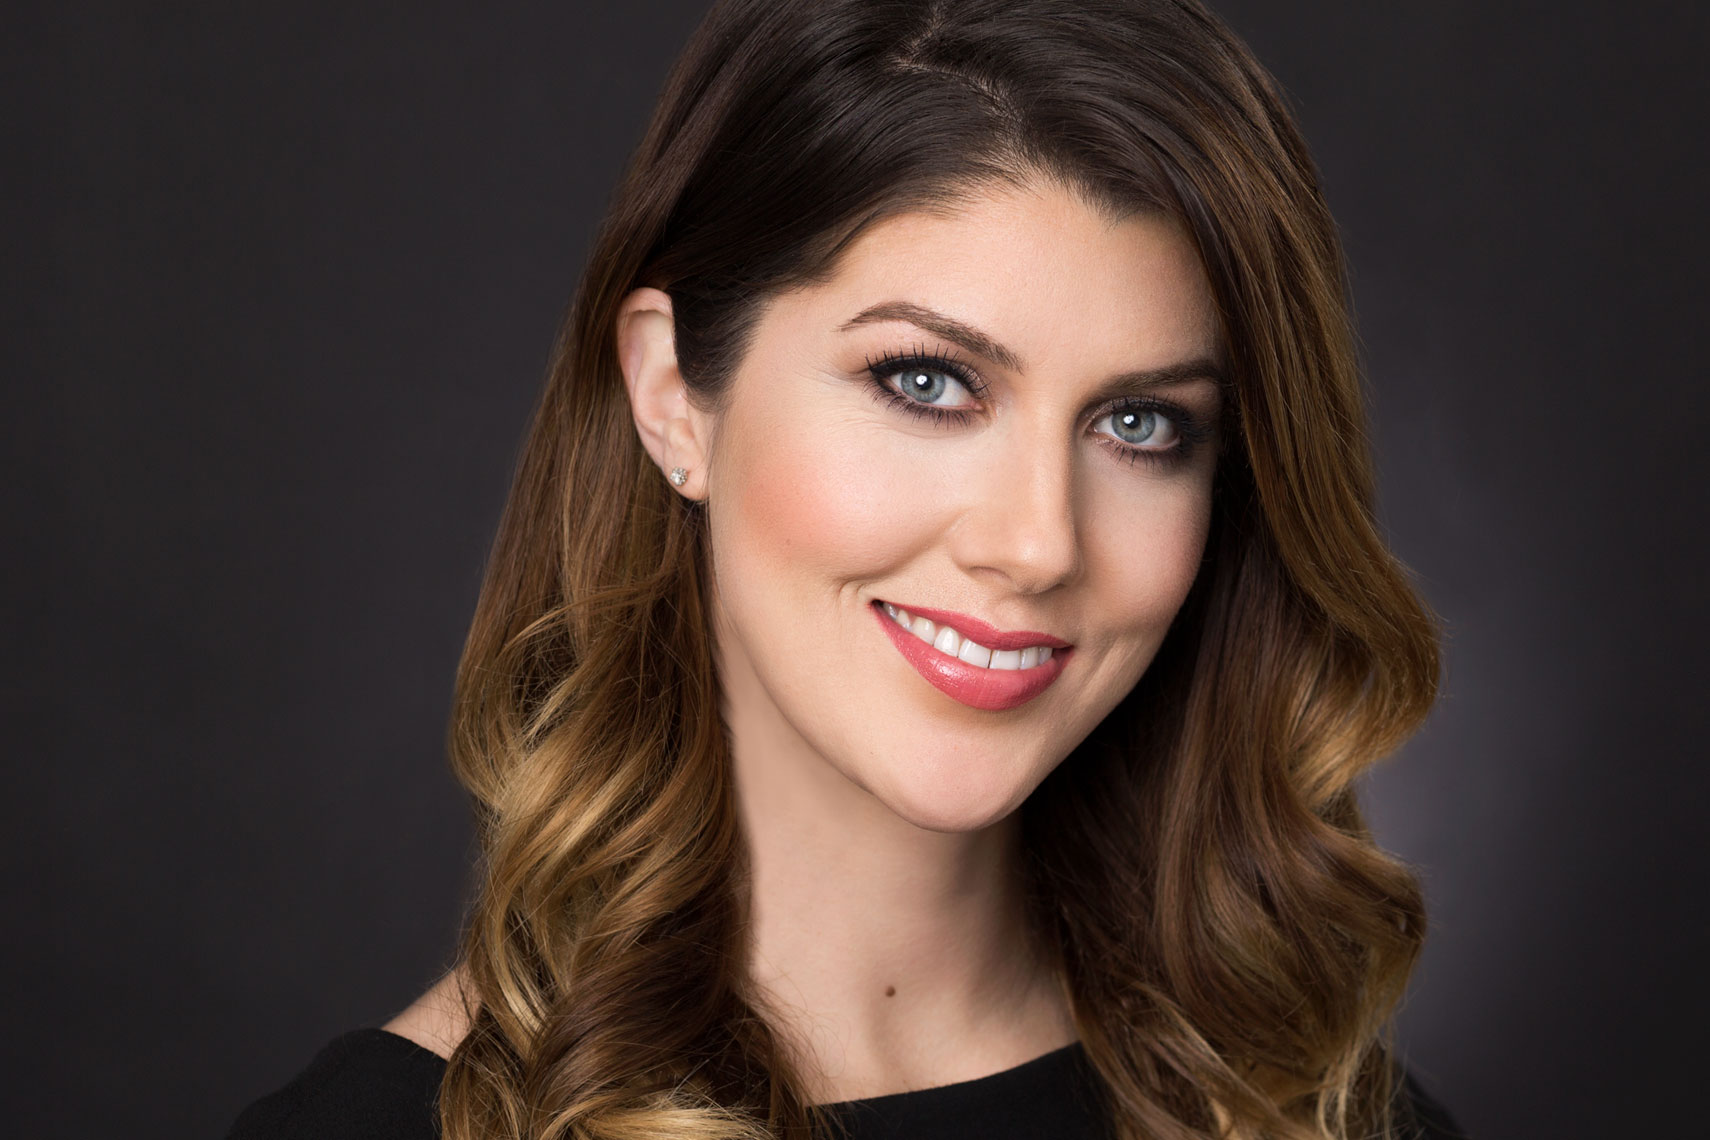 Headshot of makeup artist